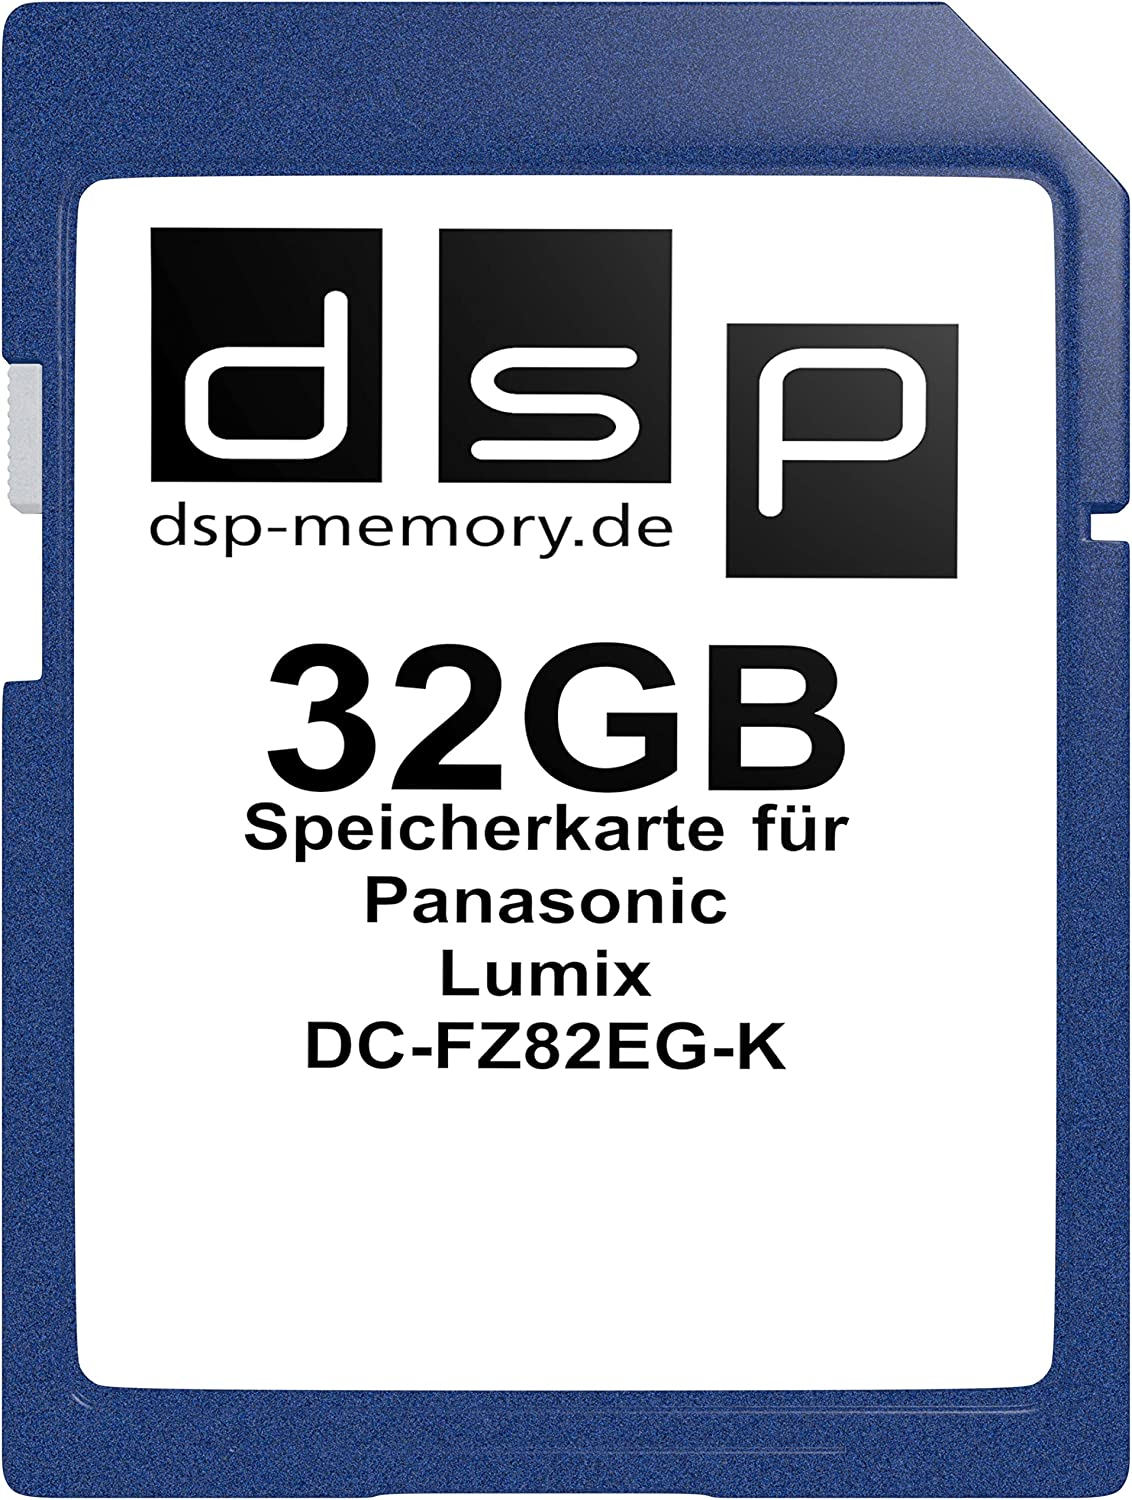 Dsp Memory 32 Gb Memory Card For Panasonic Lumix Computers Accessories